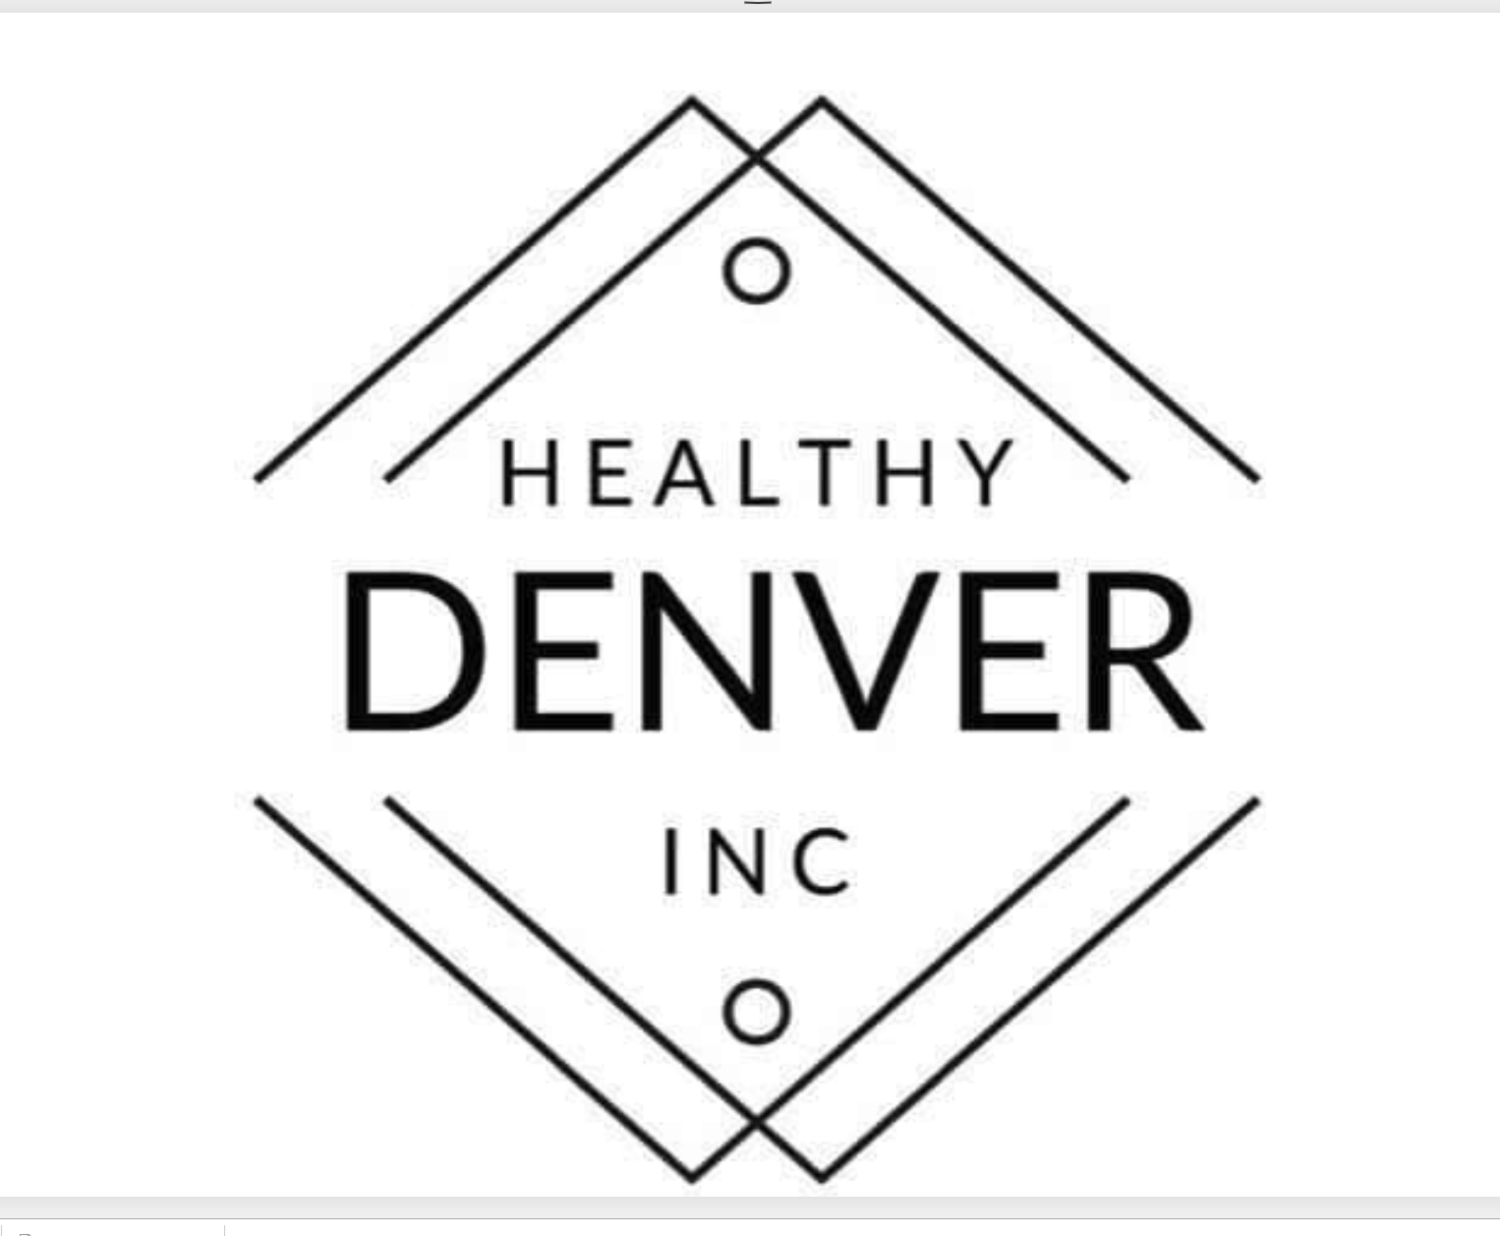 Healthy Denver Inc.